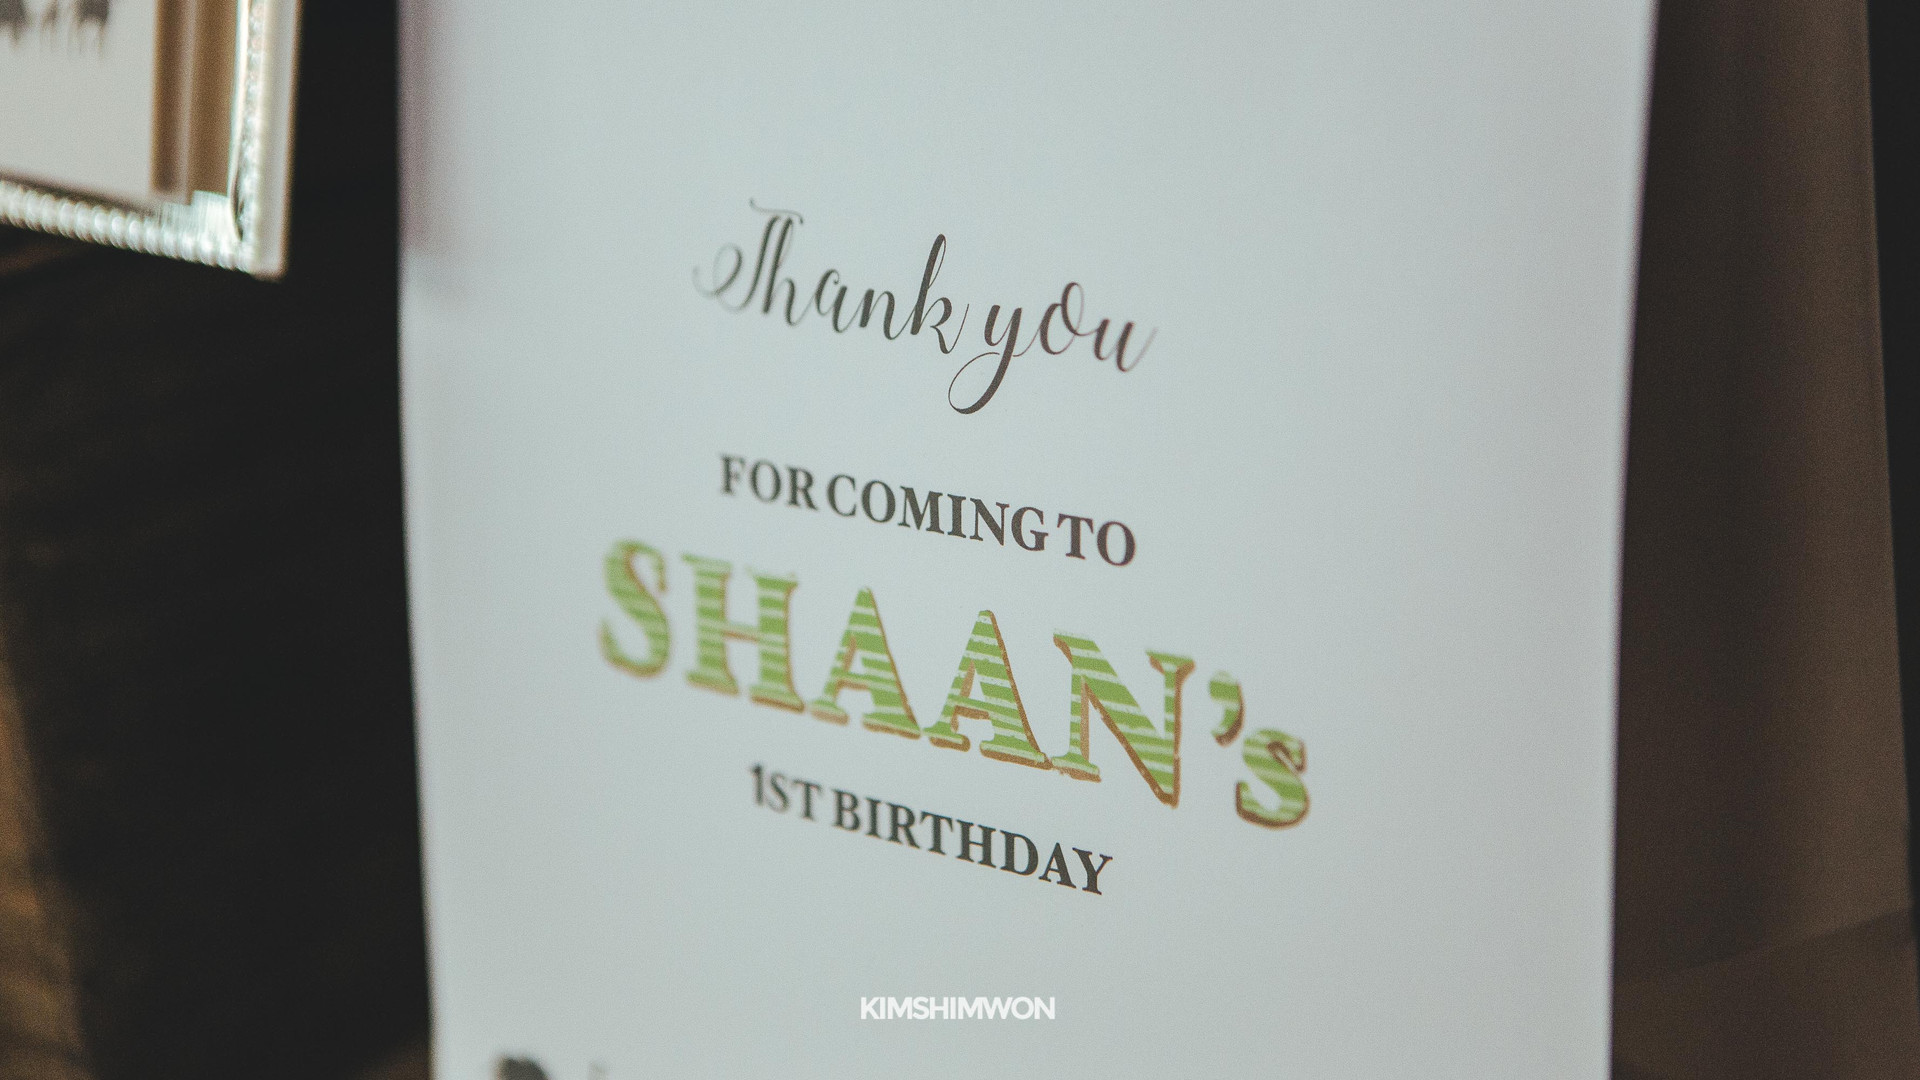 Shaan First Birthday 10.15.16-28.jpg